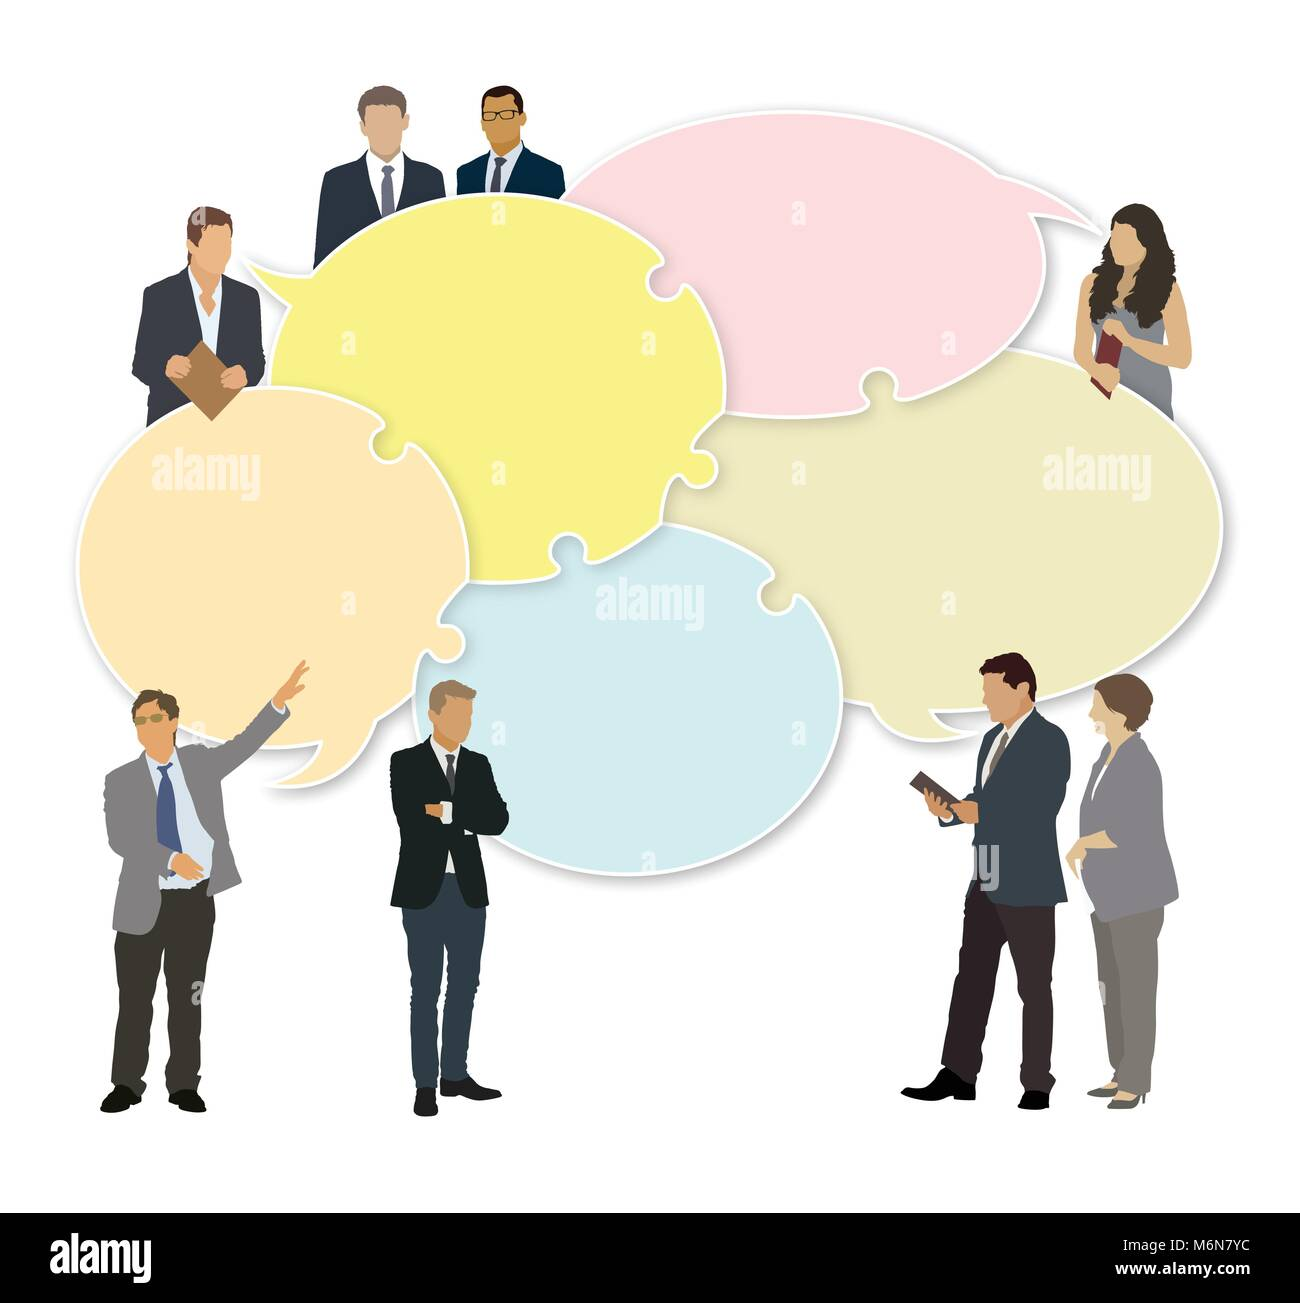 Good business team. The members of the team think differently, but they are talking together. - Stock Vector